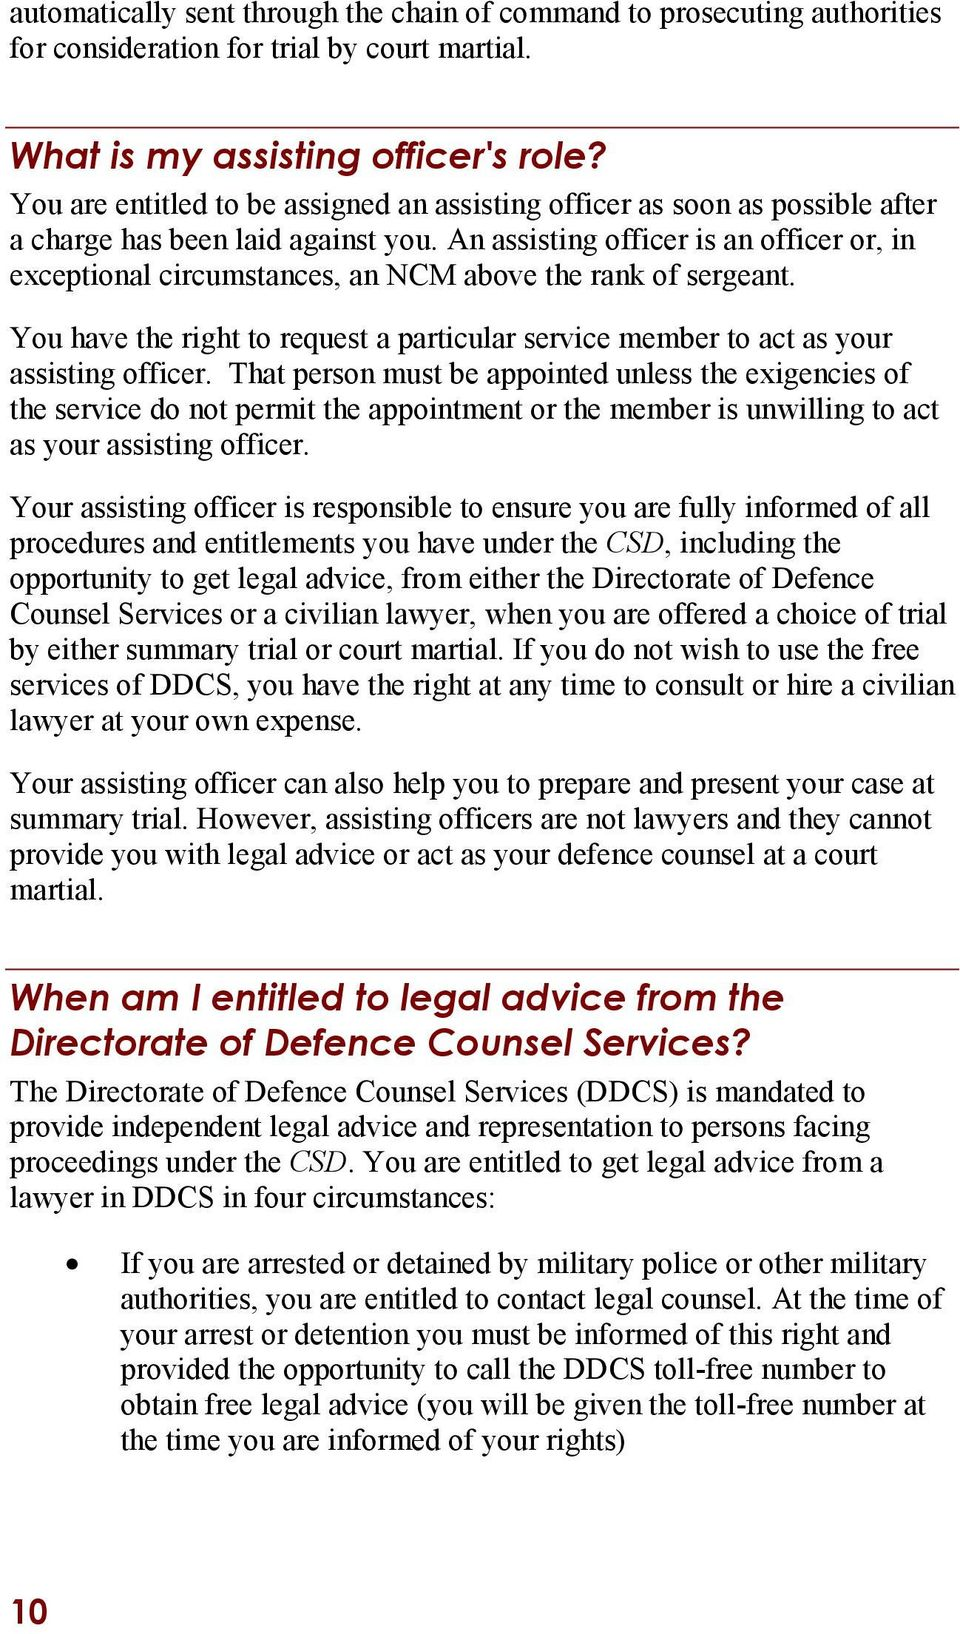 An assisting officer is an officer or, in exceptional circumstances, an NCM above the rank of sergeant. You have the right to request a particular service member to act as your assisting officer.